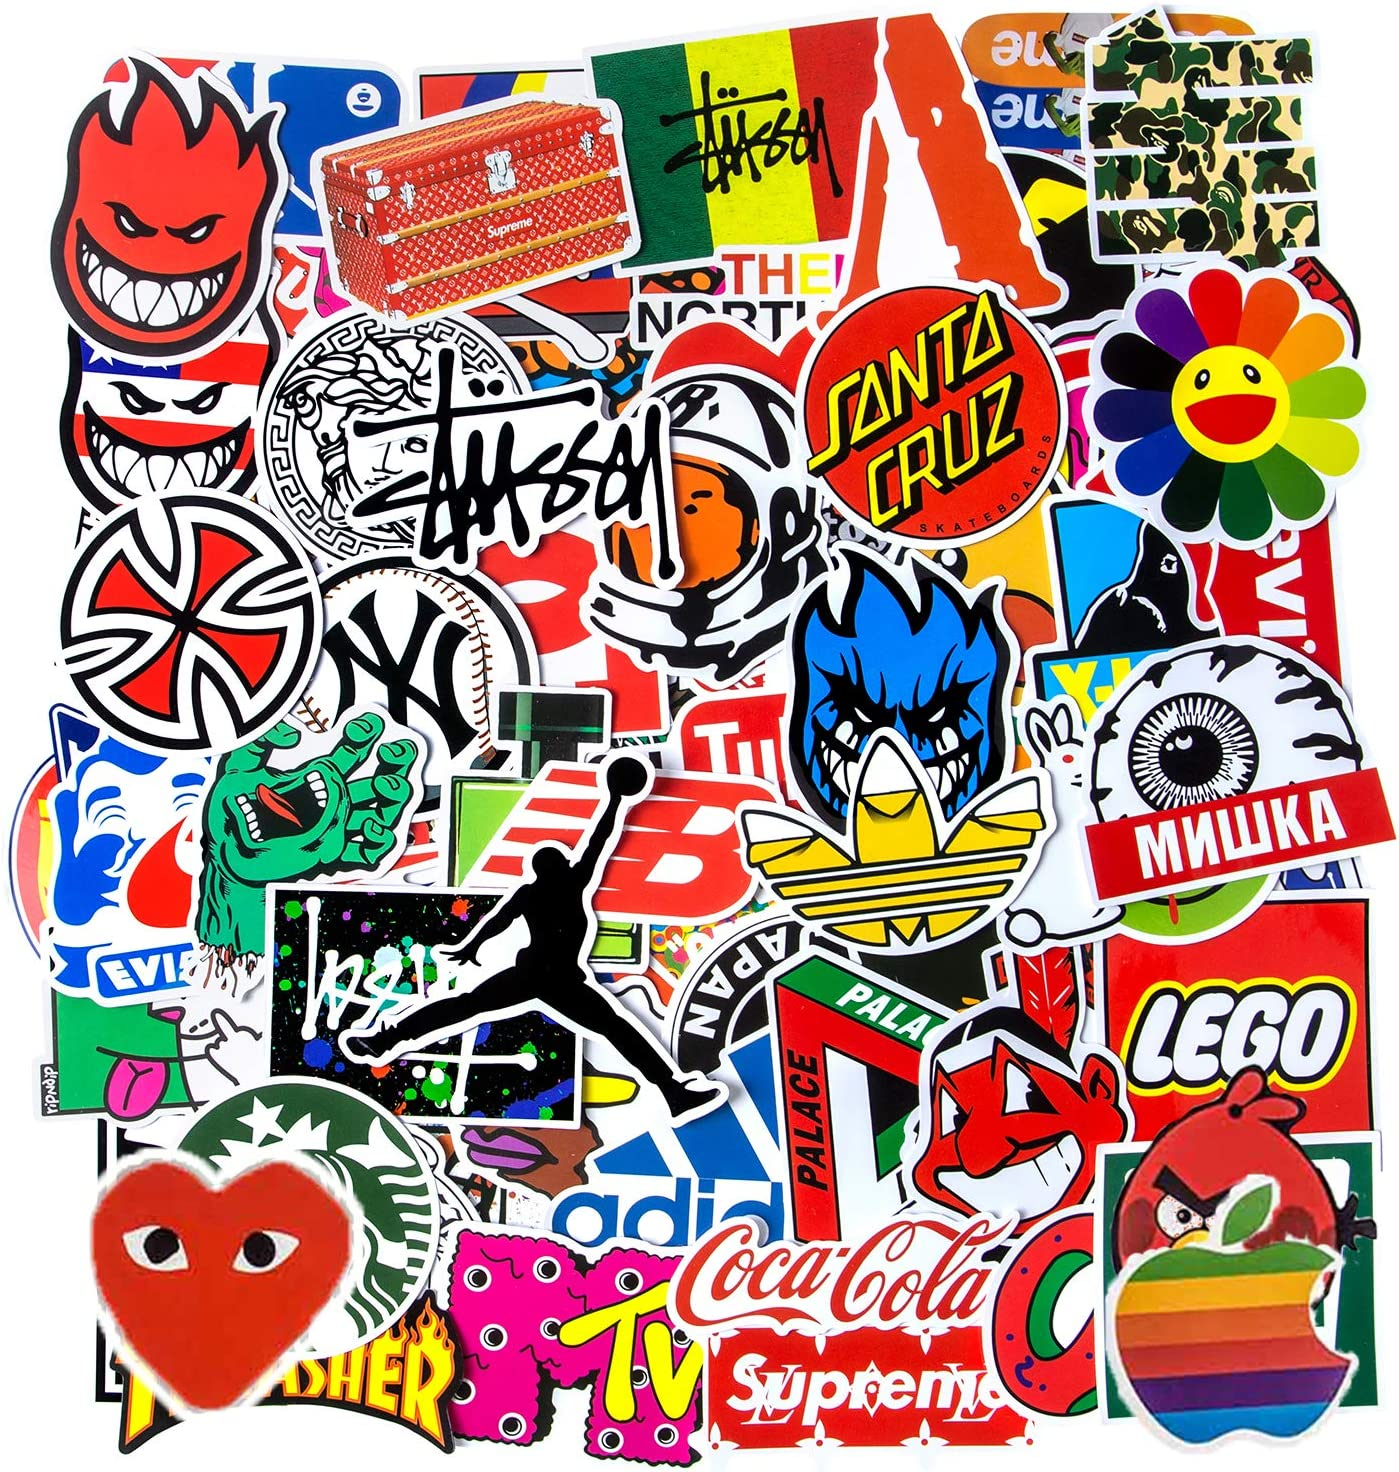 Brand Stickers, Cool Stickers for Hydro Flask, Water Bottle Stickers Vinyl Waterproof Luggage Car Bike Bicycle Computer Stickers for Teens(100pcs)